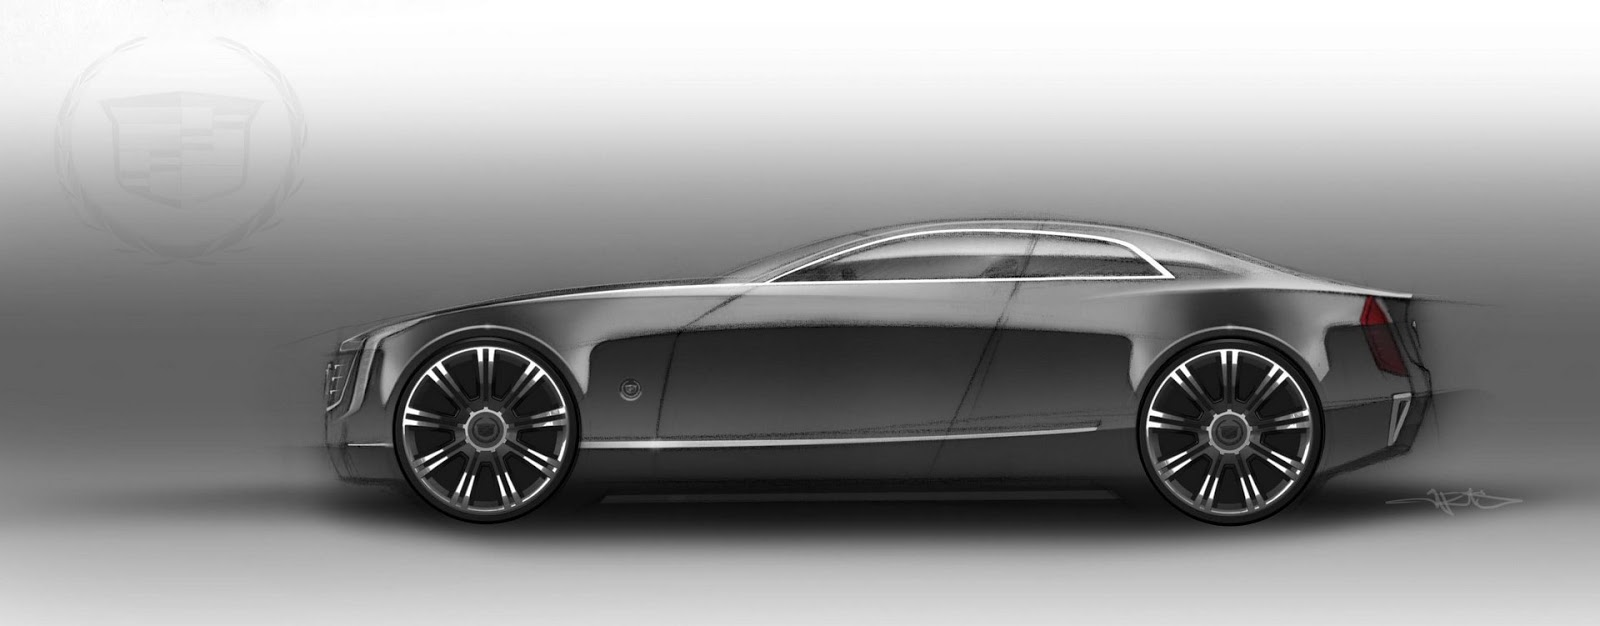 BIGGS CADILLAC NEWS and REVIEWS  Cadillacs Concept Elmiraj